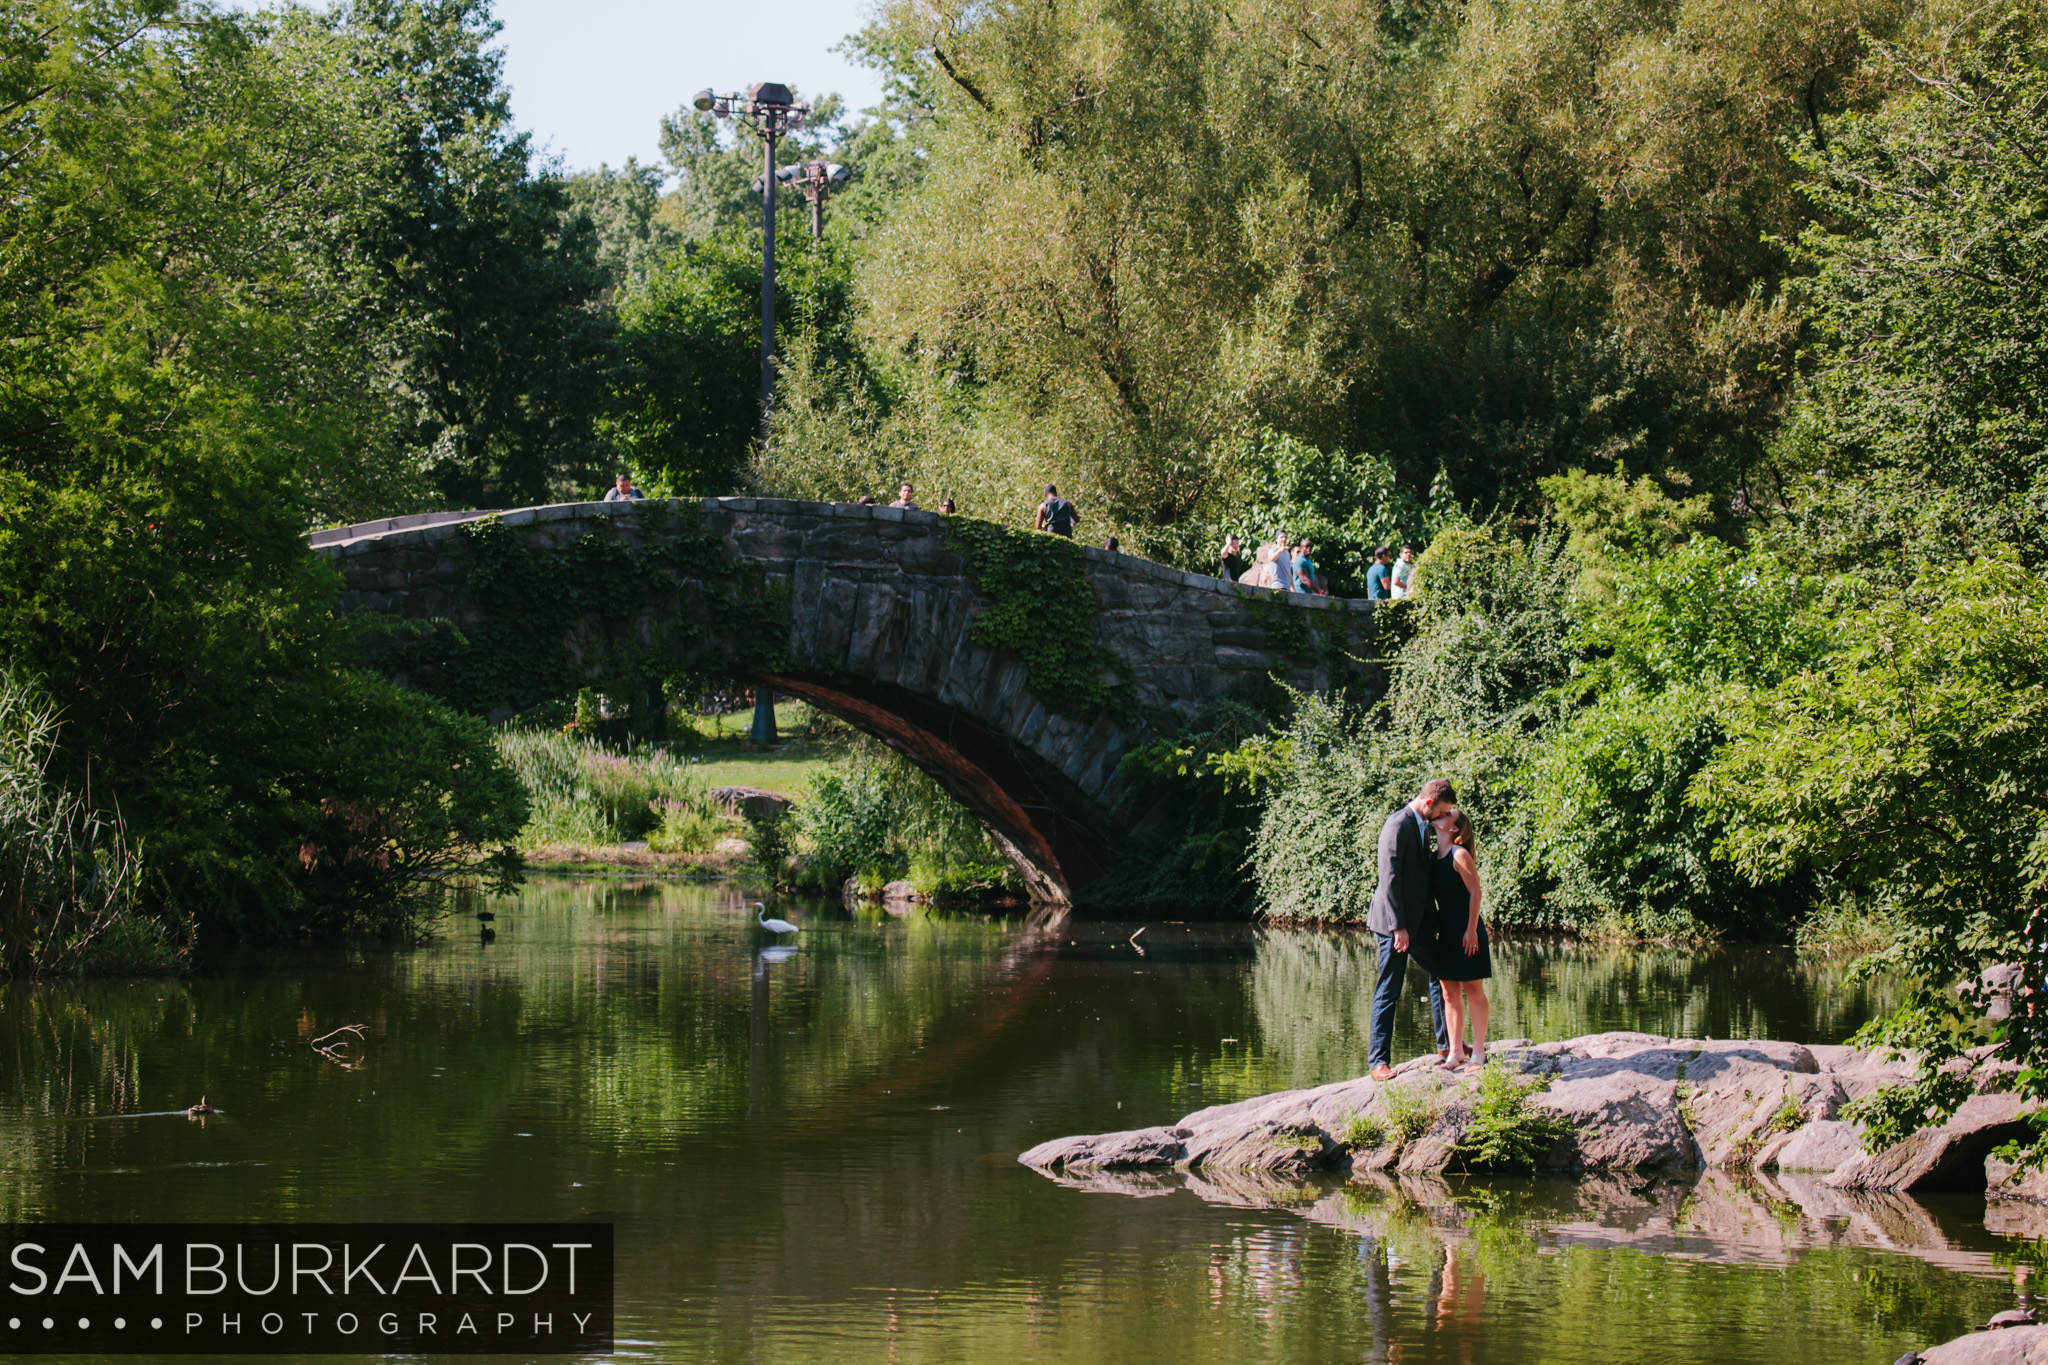 sburkardt_new_york_proposal_engagement_central_park_005.jpg